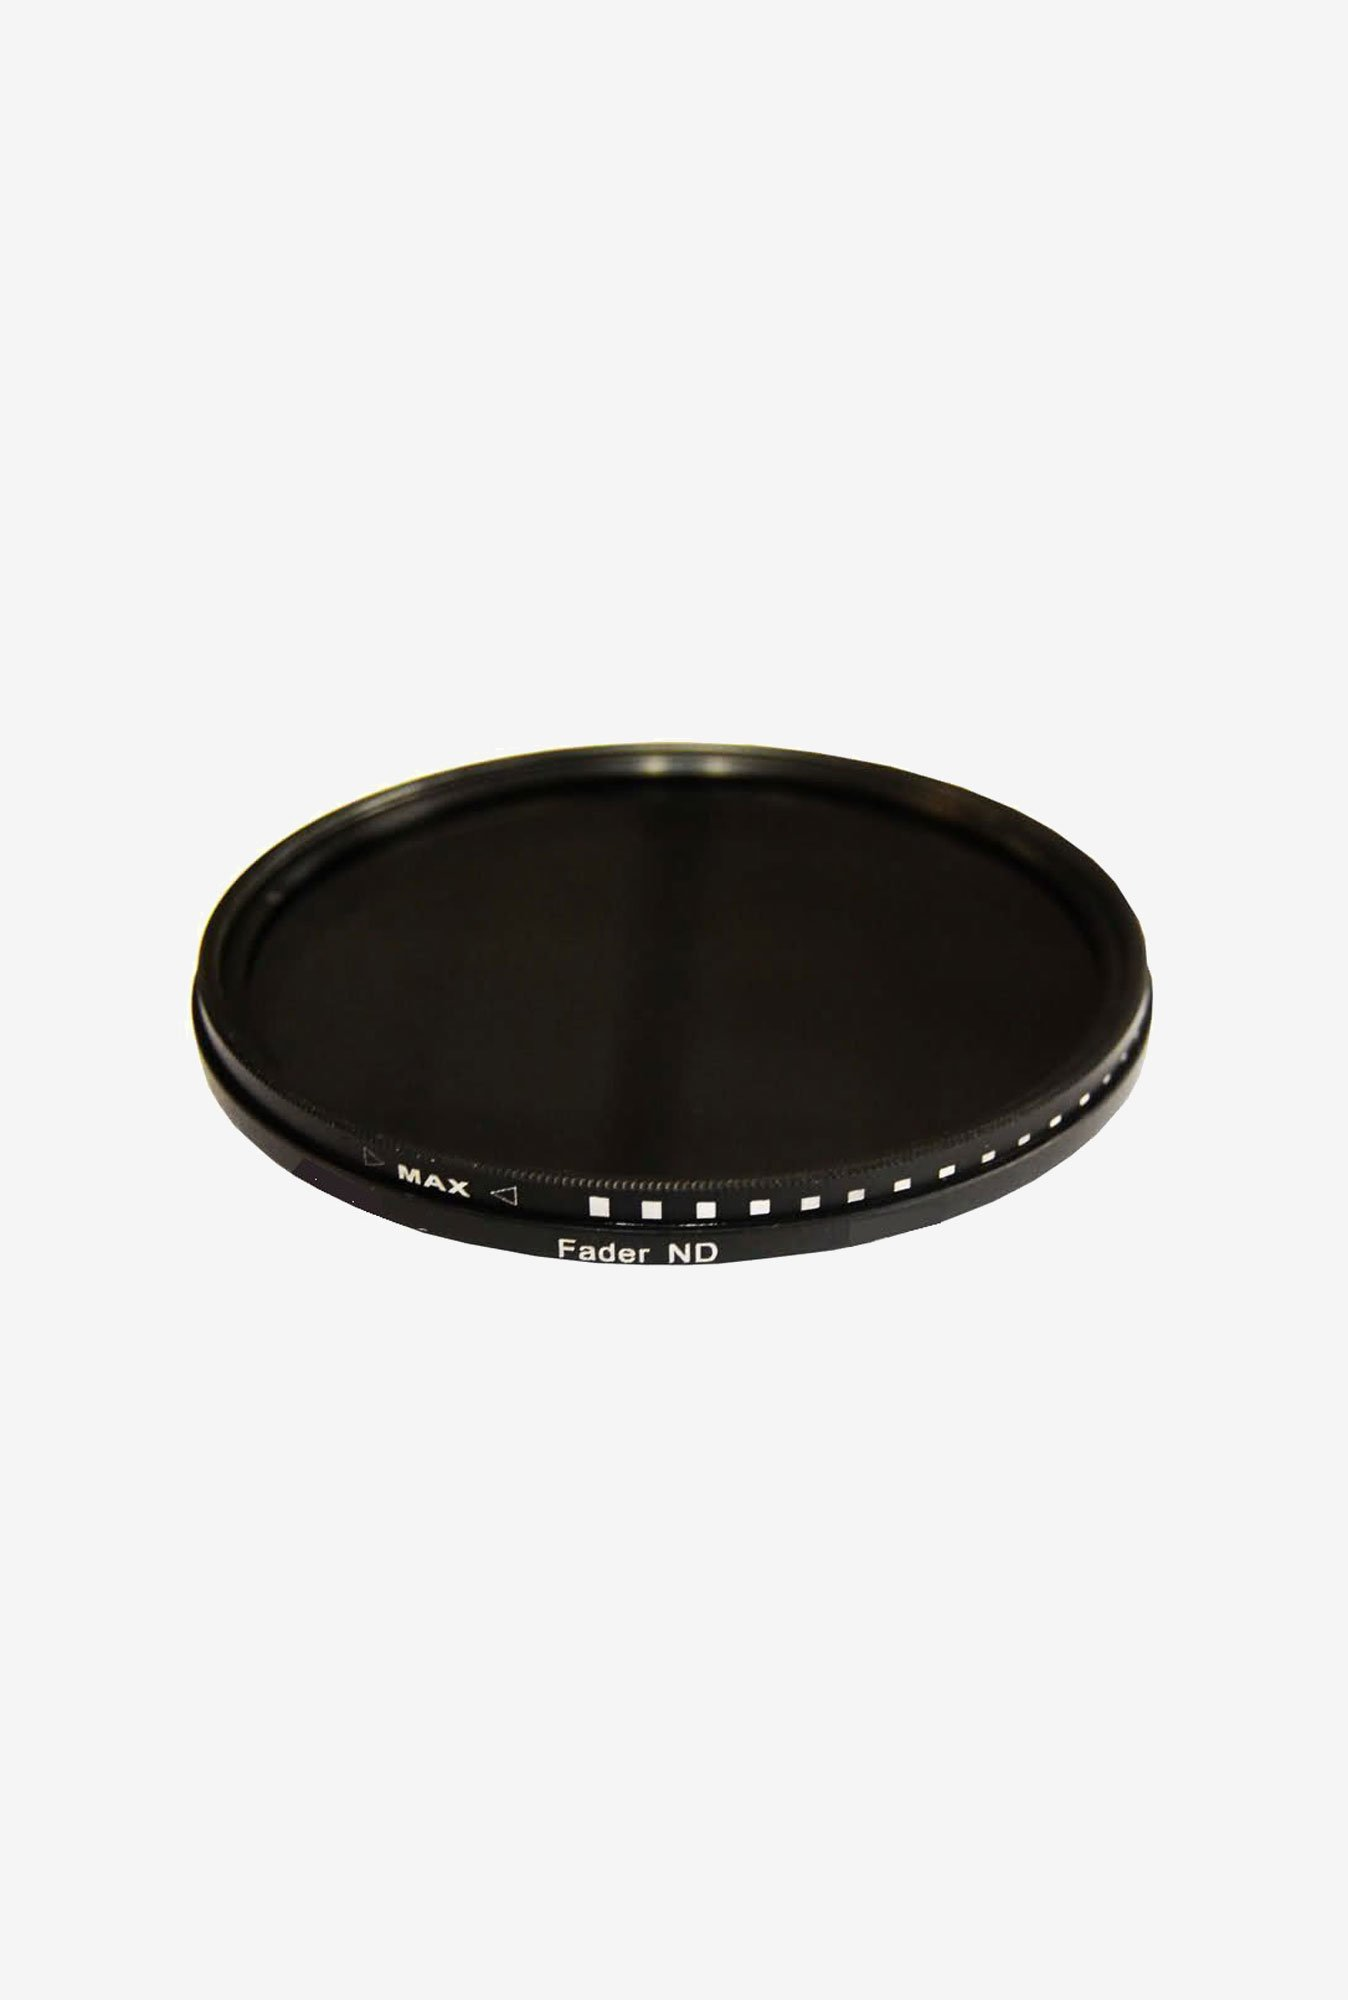 PLR Optics 72mm HD Multi-Coated Variable Range ND Filter